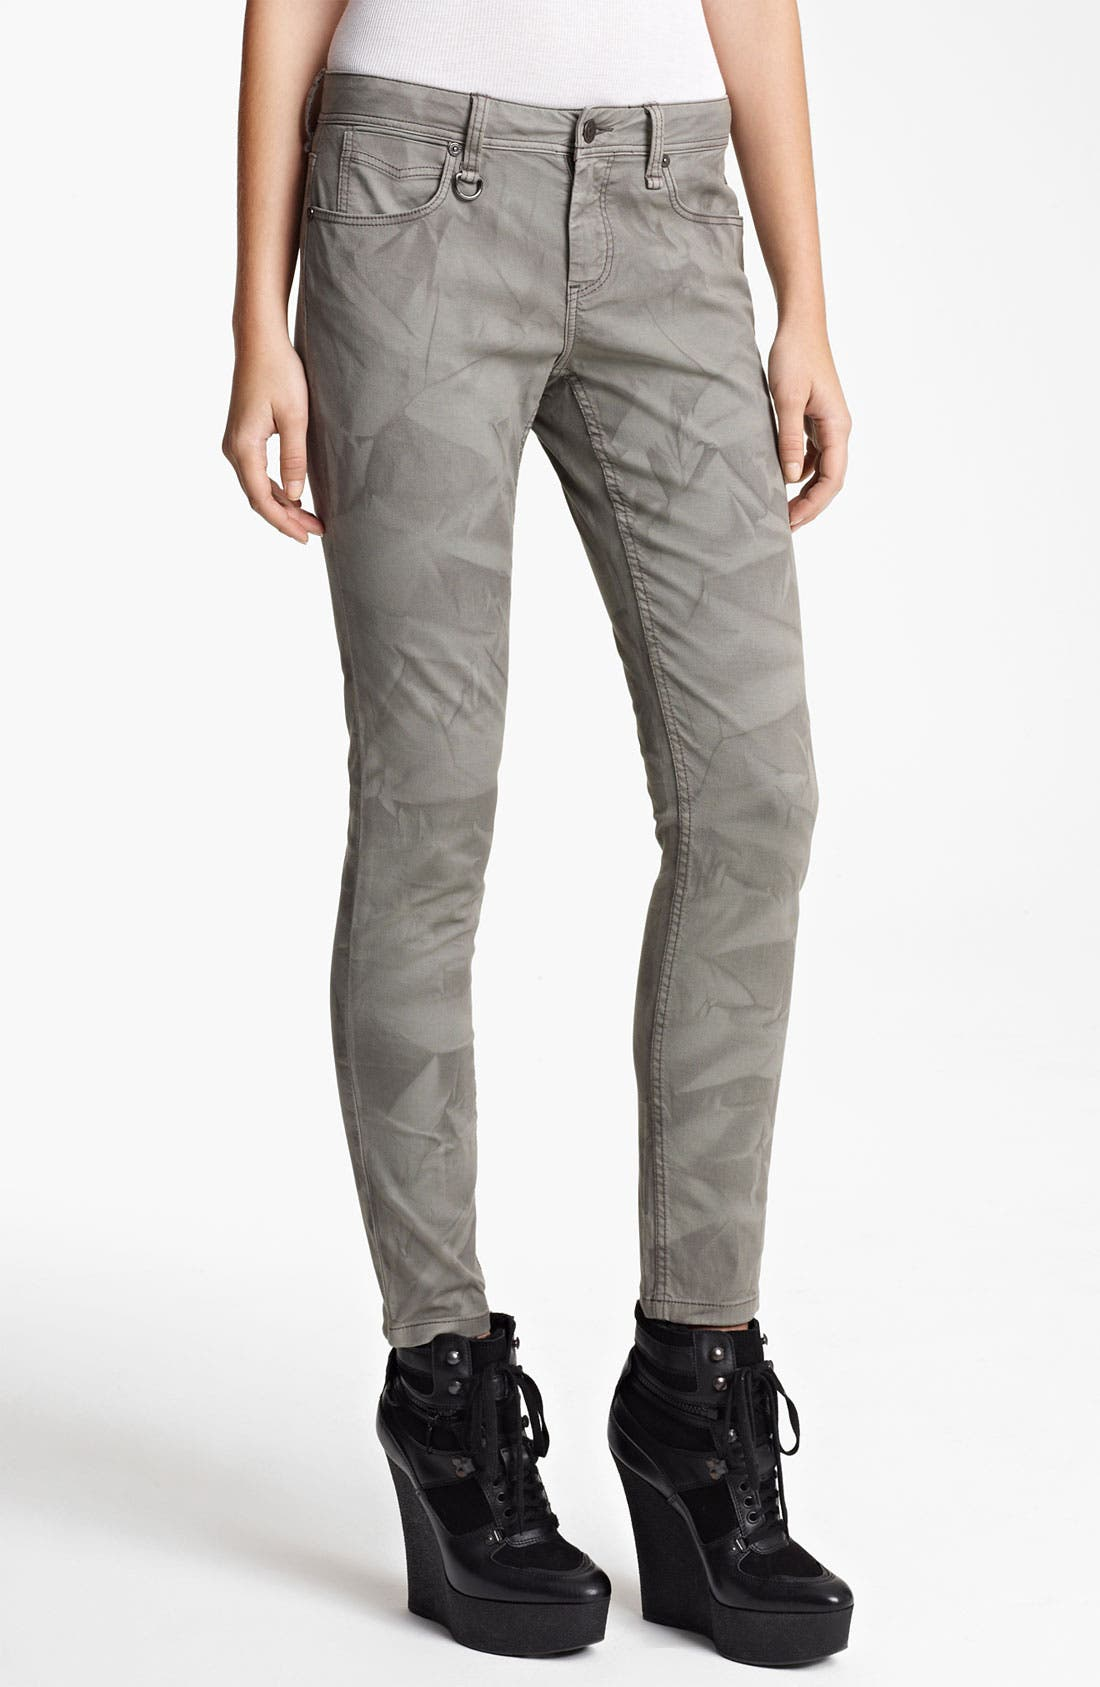 Alternate Image 1 Selected - Burberry Brit Crumple Dye Pants (Online Exclusive)